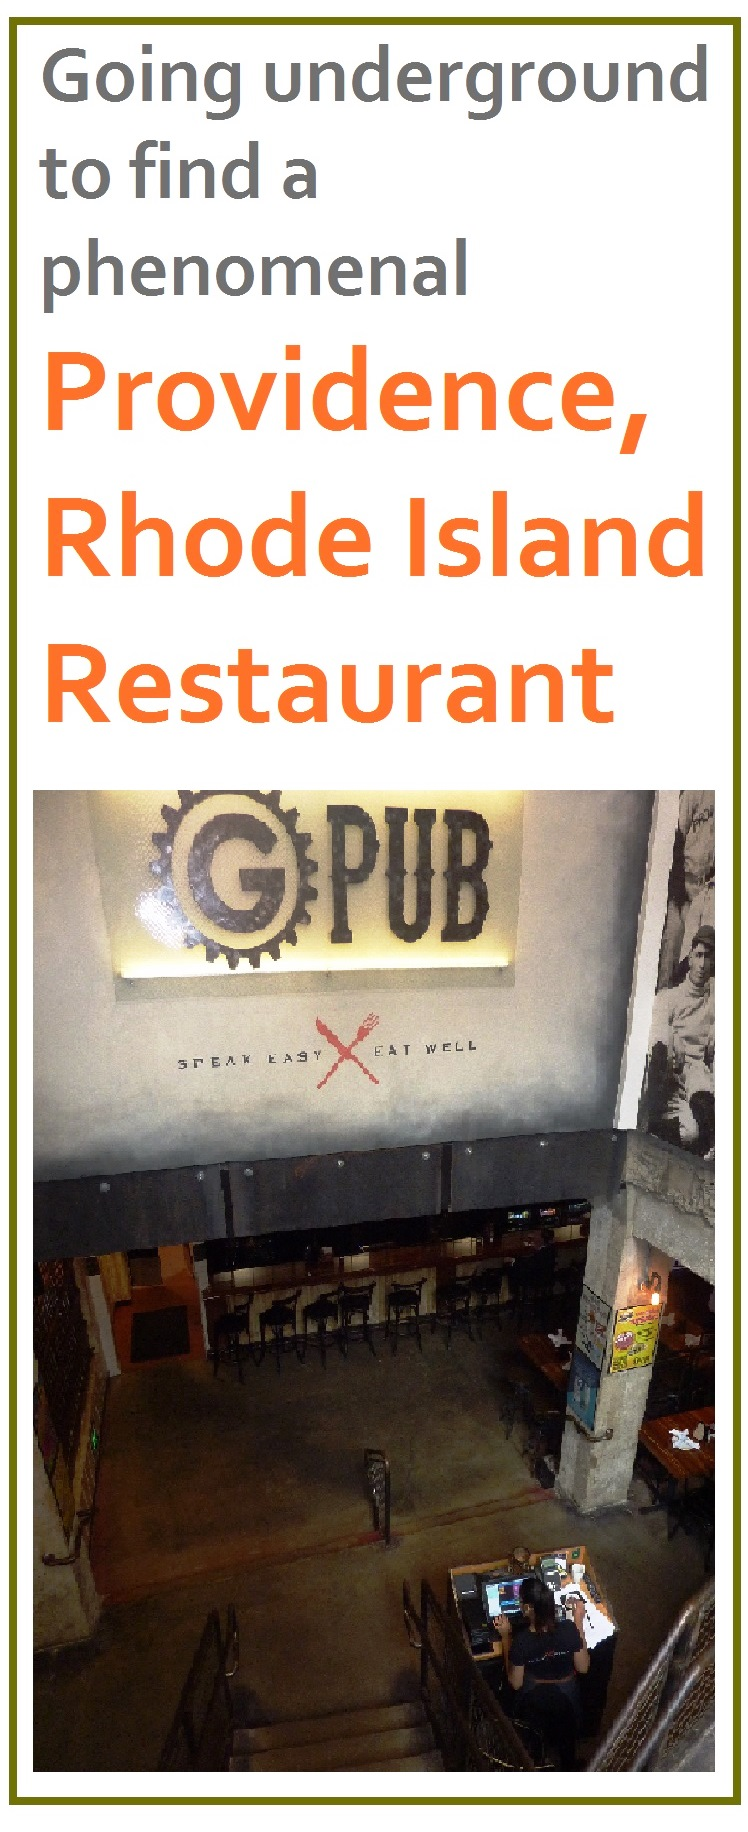 The Providence GPub in Providence, R.I., is located 60 ft. below ground level at the former Providence Gas Company site. The dining and bar areas have been beautifully restored and the food is fabulous.